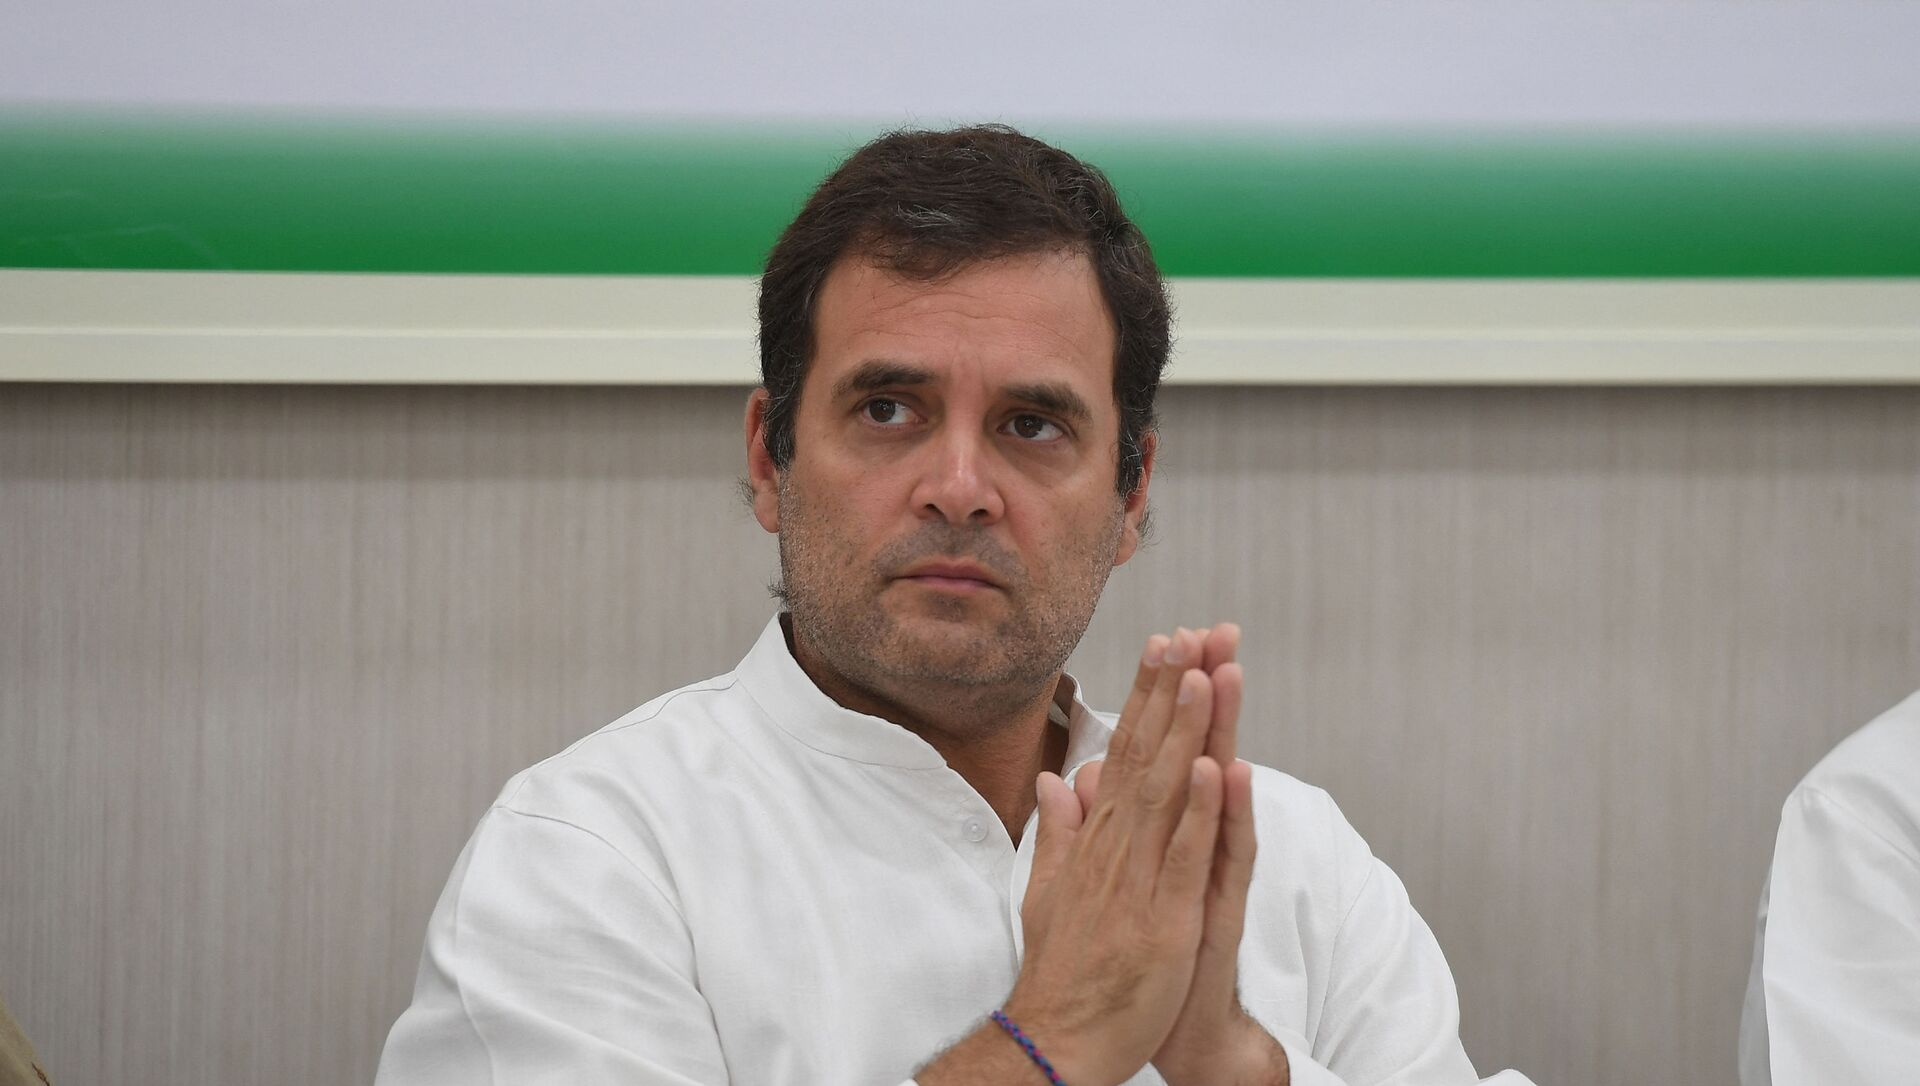 Indian National Congress Party president Rahul Gandhi gestures during a Congress Working Committee (CWC) meeting in New Delhi on May 25, 2019. - Sputnik International, 1920, 04.08.2021